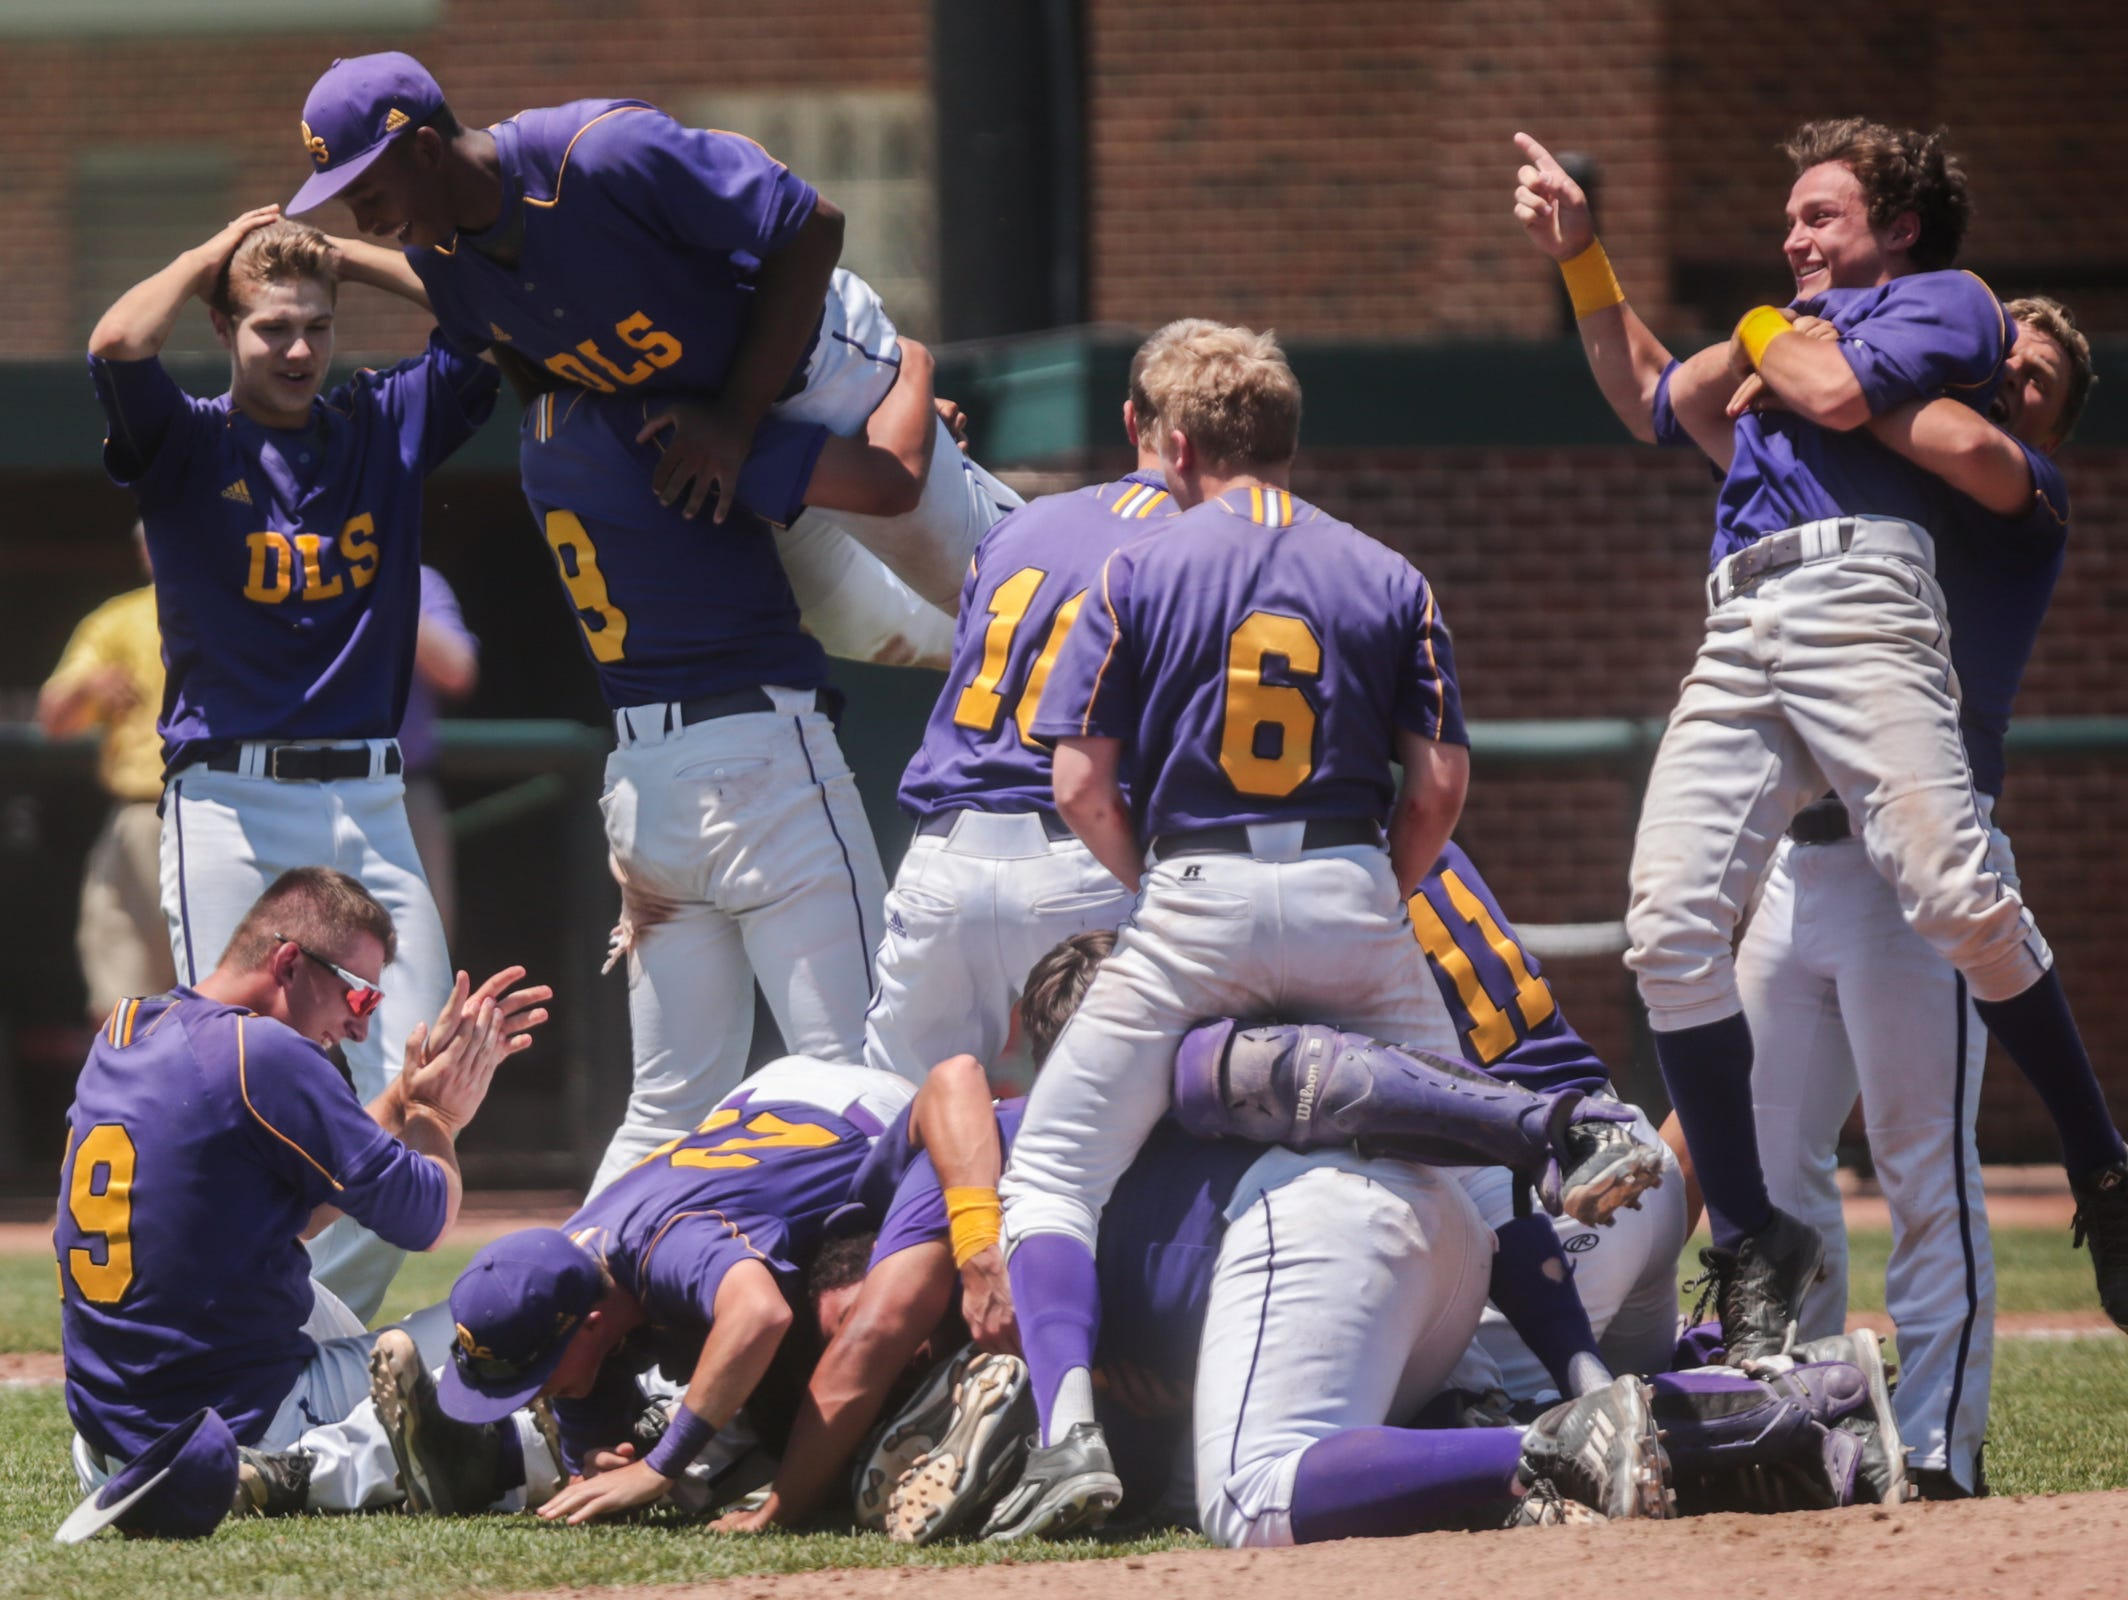 Warren DeLaSalle players celebrate winning the Championship 7-6 against Saline on Saturday, June 18, 2016 at the MHSAA Division 1 baseball Championship game at Michigan State University in East Lansing, MI.